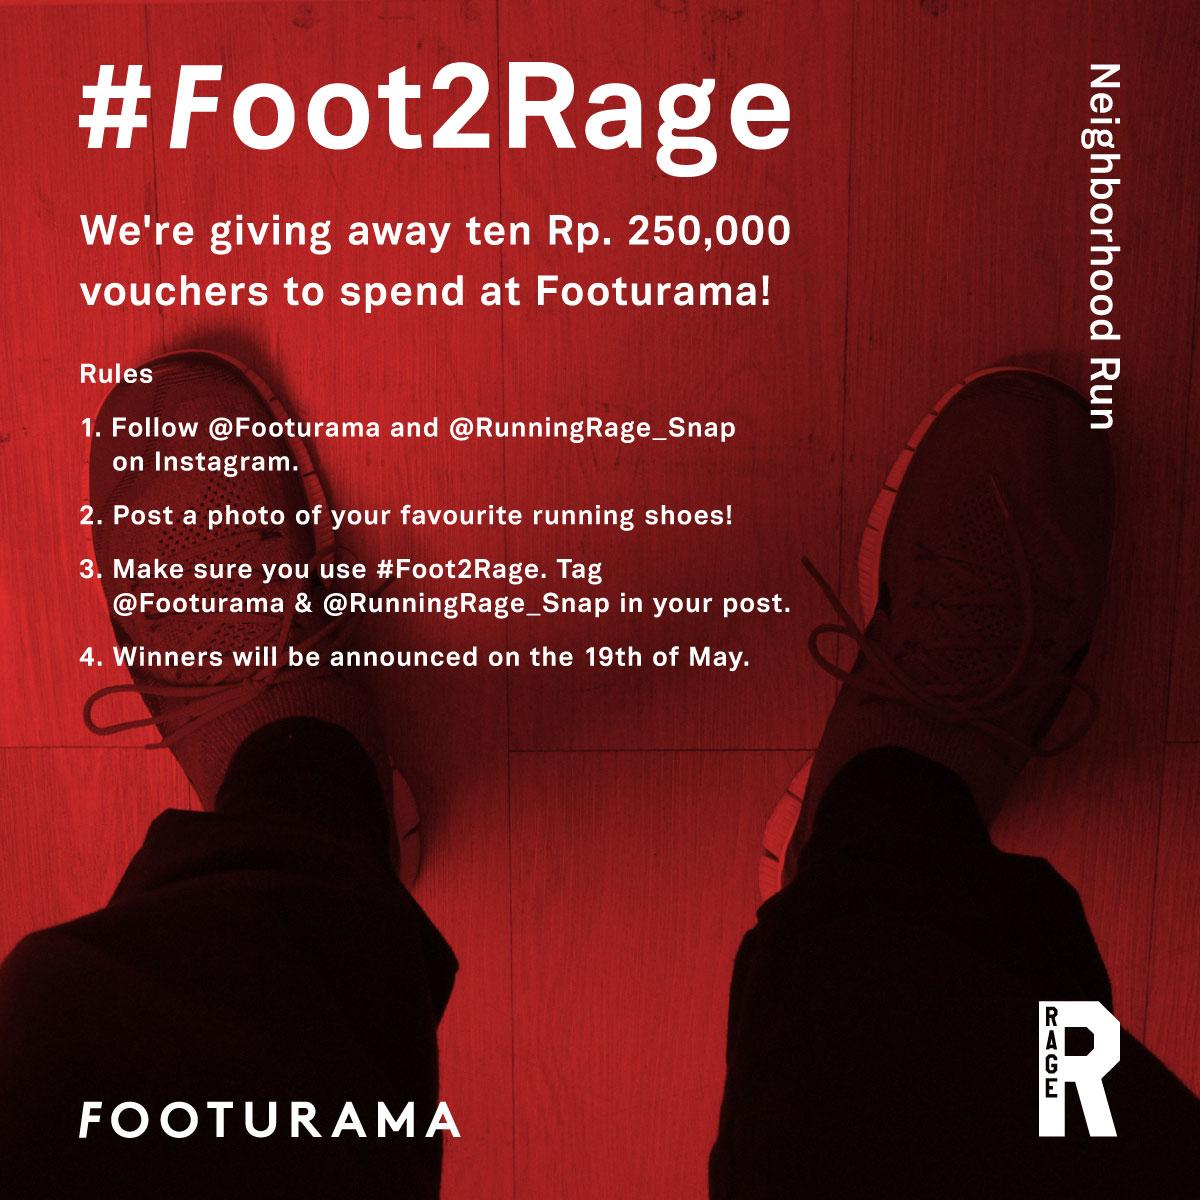 foot2rage hashtag on Twitter